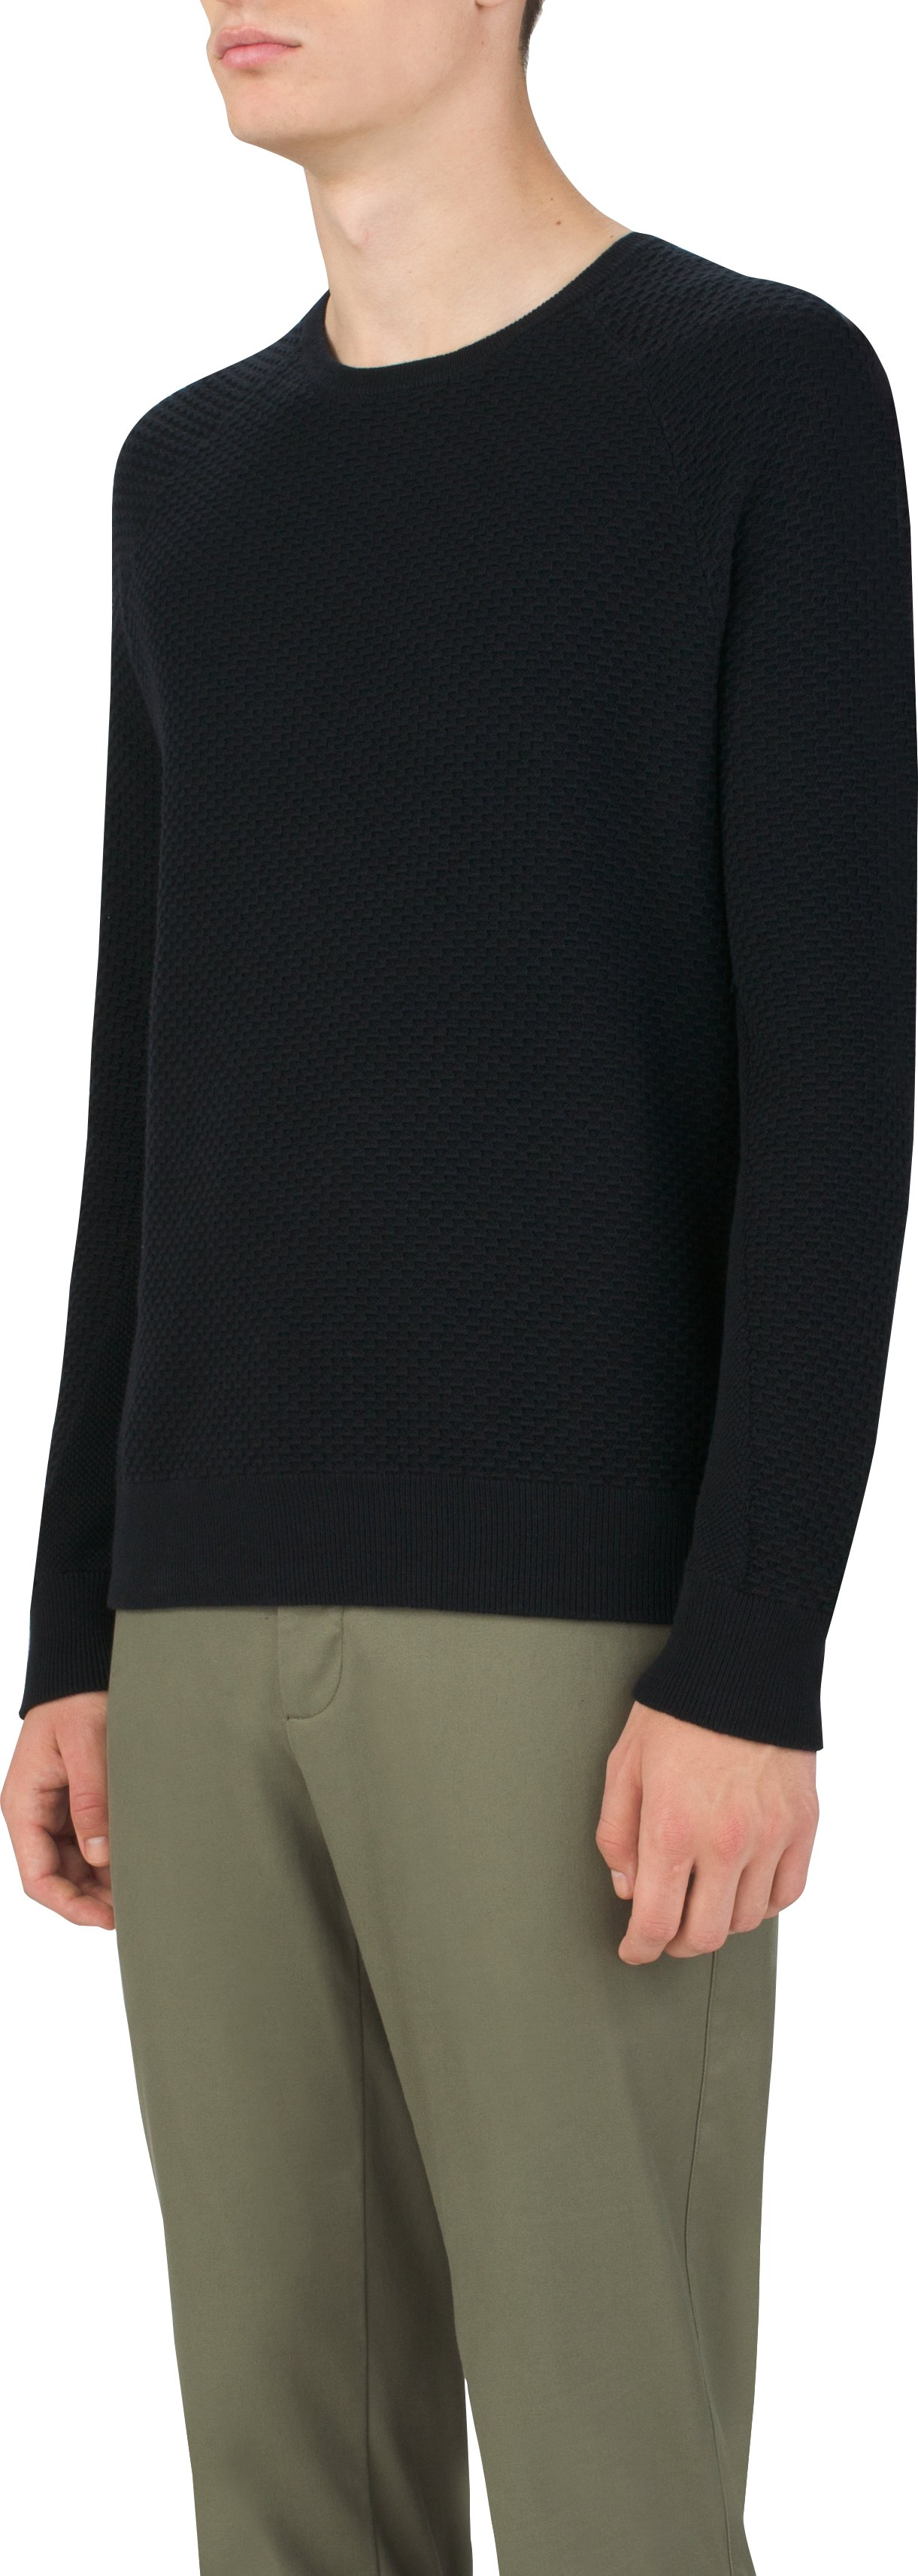 Gridknit Crew Sweater, Black , undefined